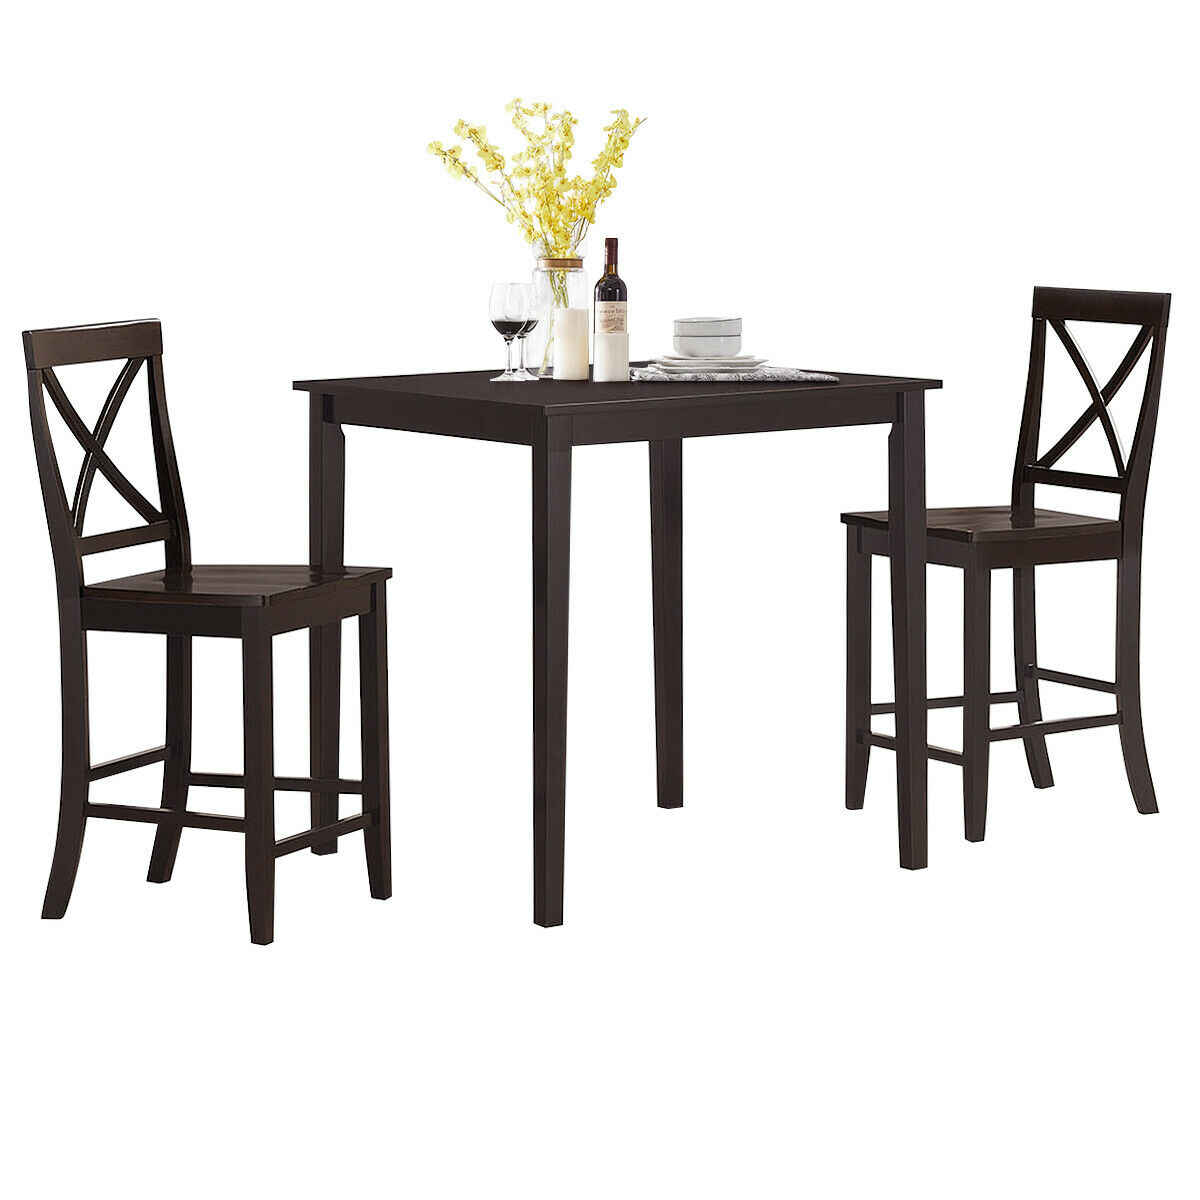 9 Piece Kitchen Dining Set Counter Height Square Table with 9 ...